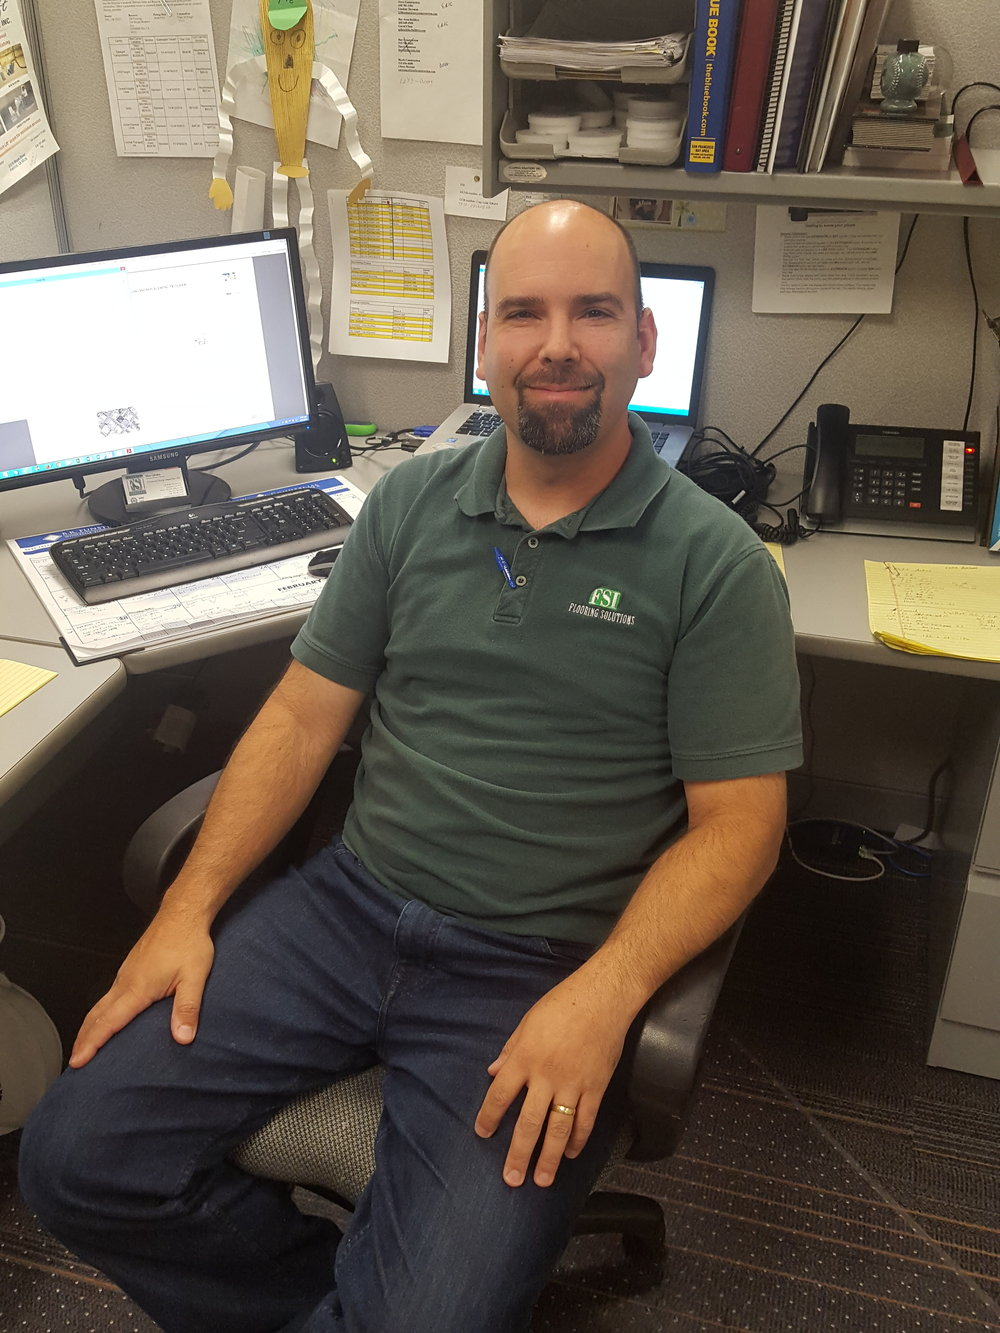 Matt Glieden, Account Manager 12 years in flooring and 9 years at FSI. Matt@flooring-solutions.com